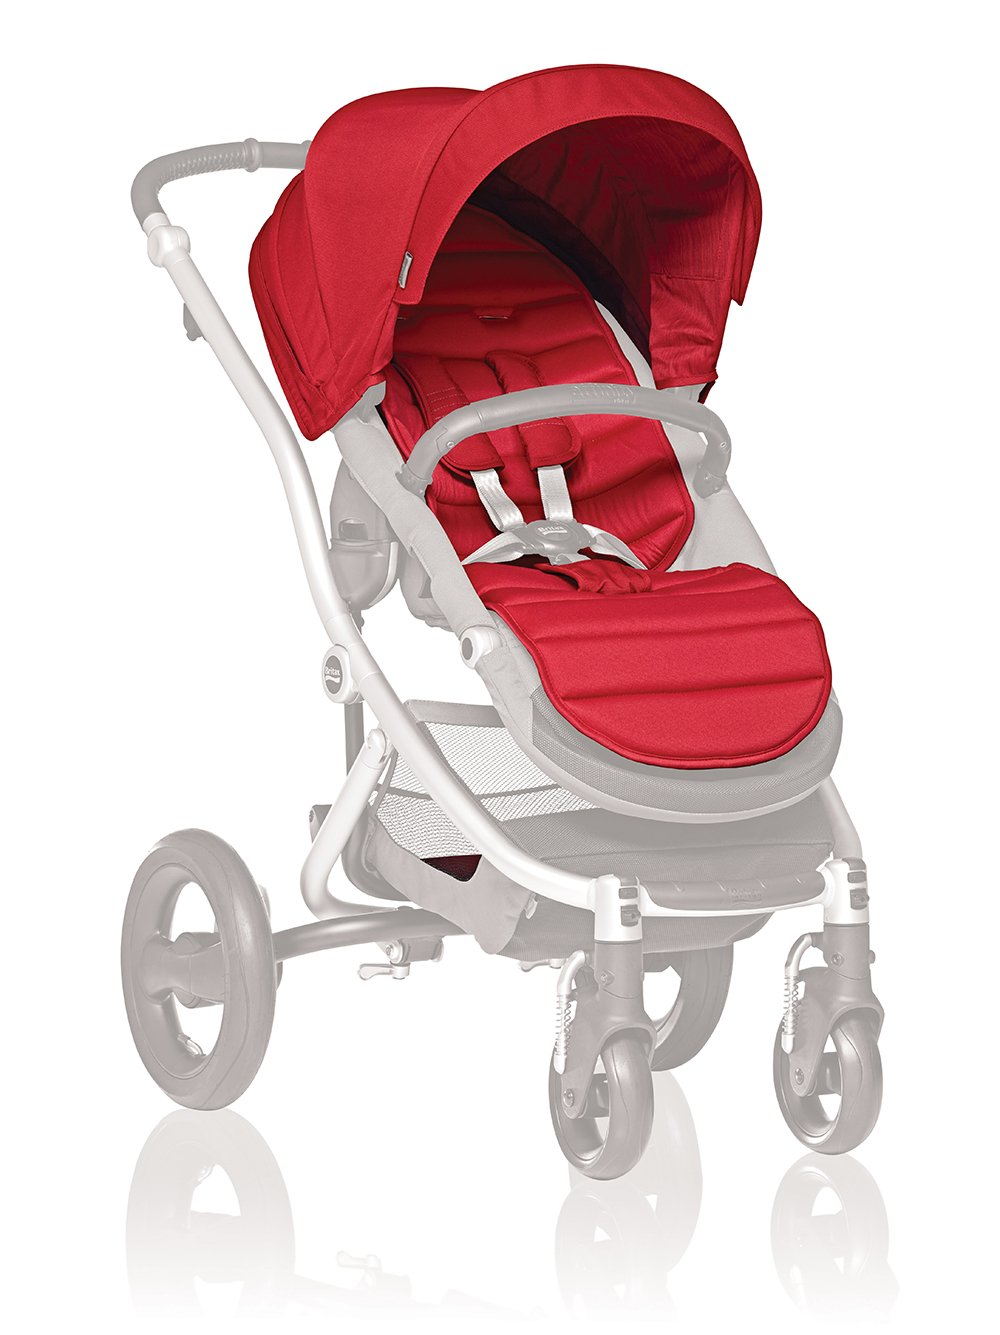 Top 9 Best Travel Strollers for your Baby Reviews in 2020 8